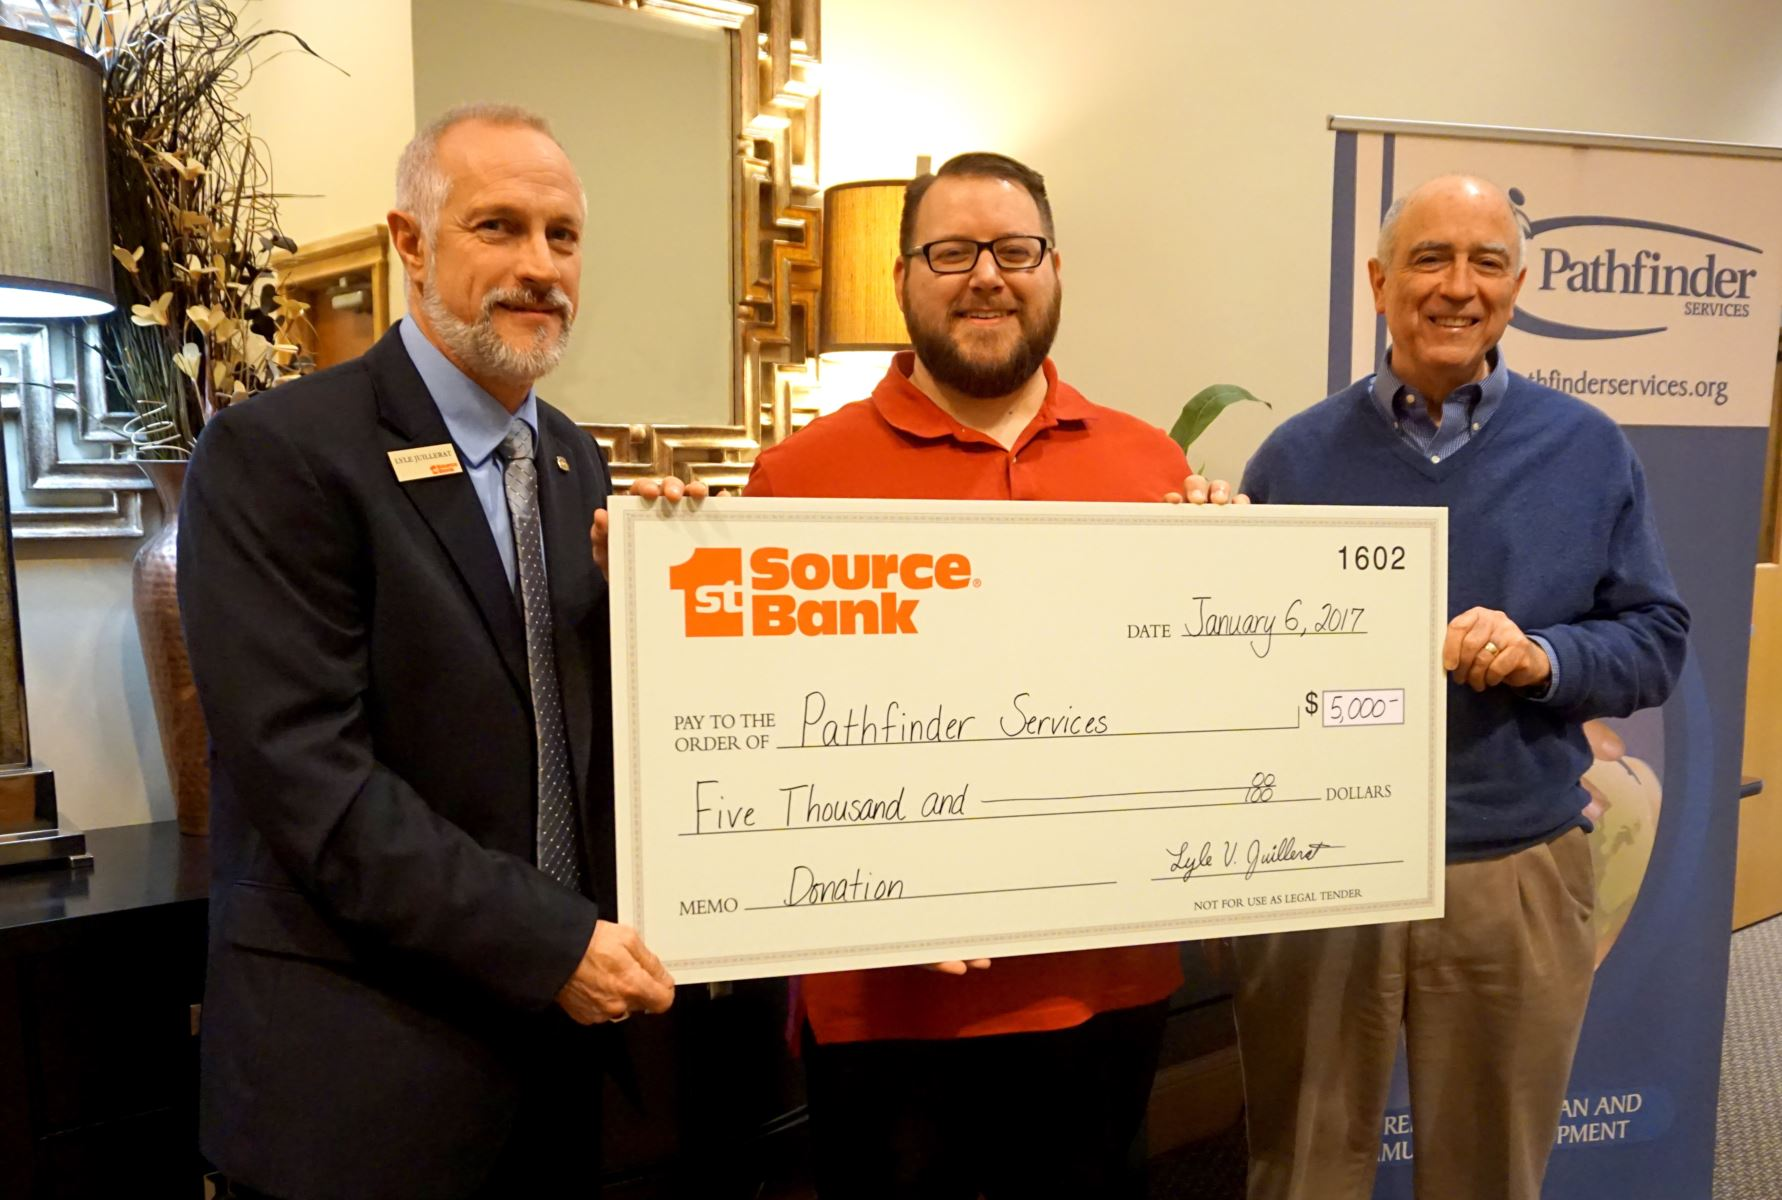 Lyle Juillerat (far left) presents donation to Justin Barker and John Niederman of Pathfinder Services.